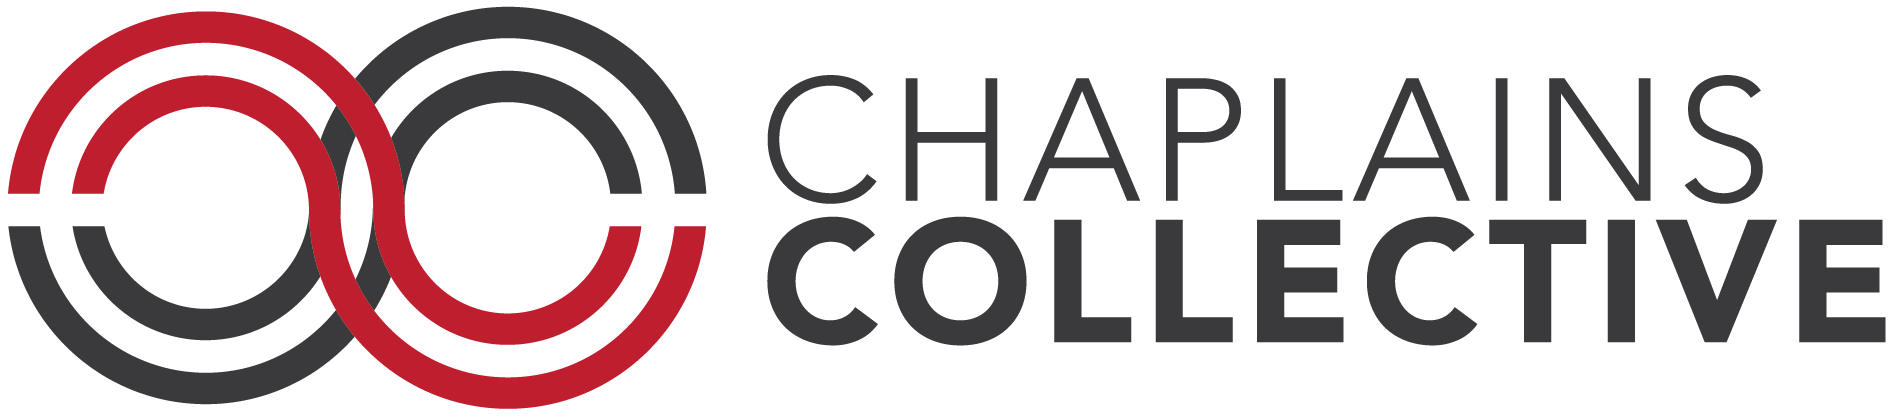 Chaplains Collective